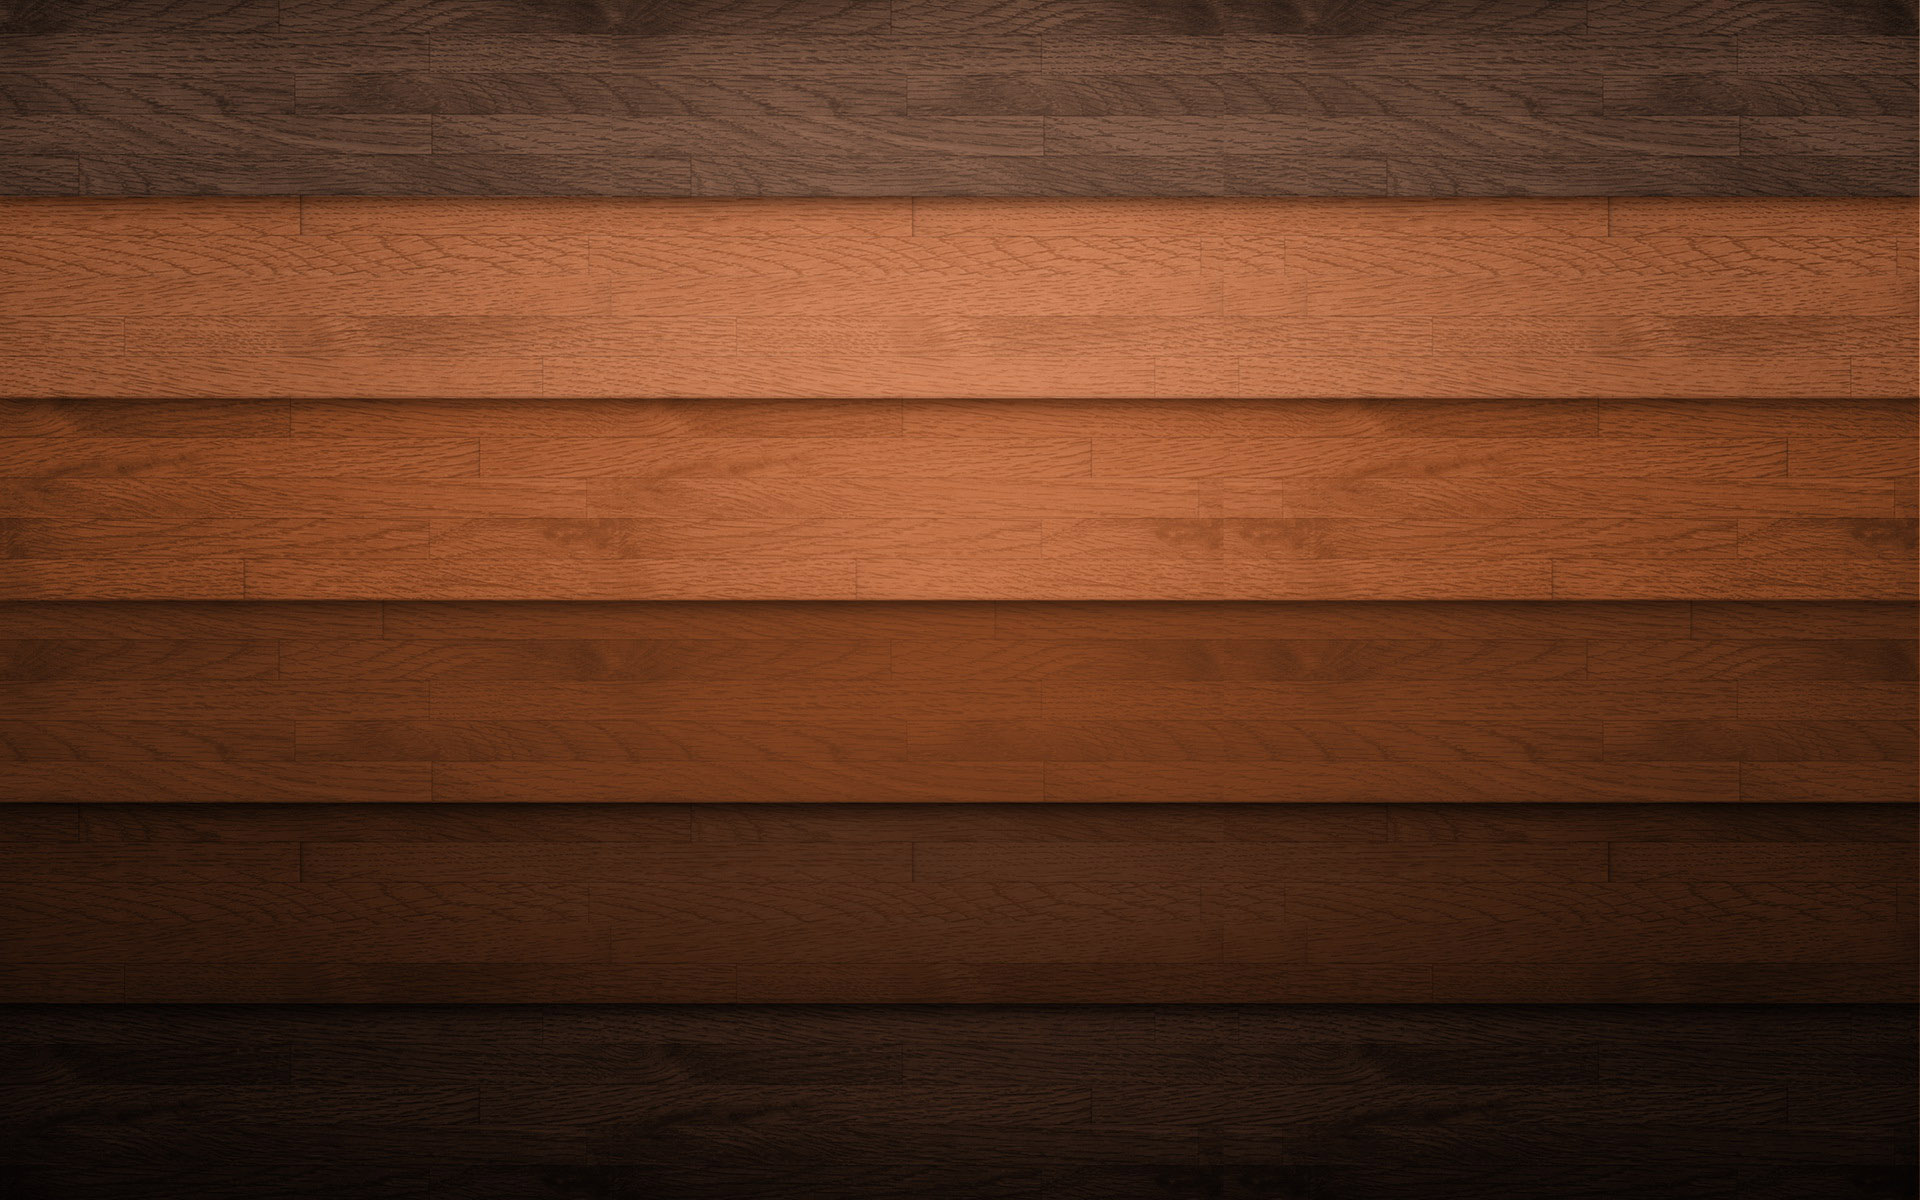 Wood texture wallpaper hd